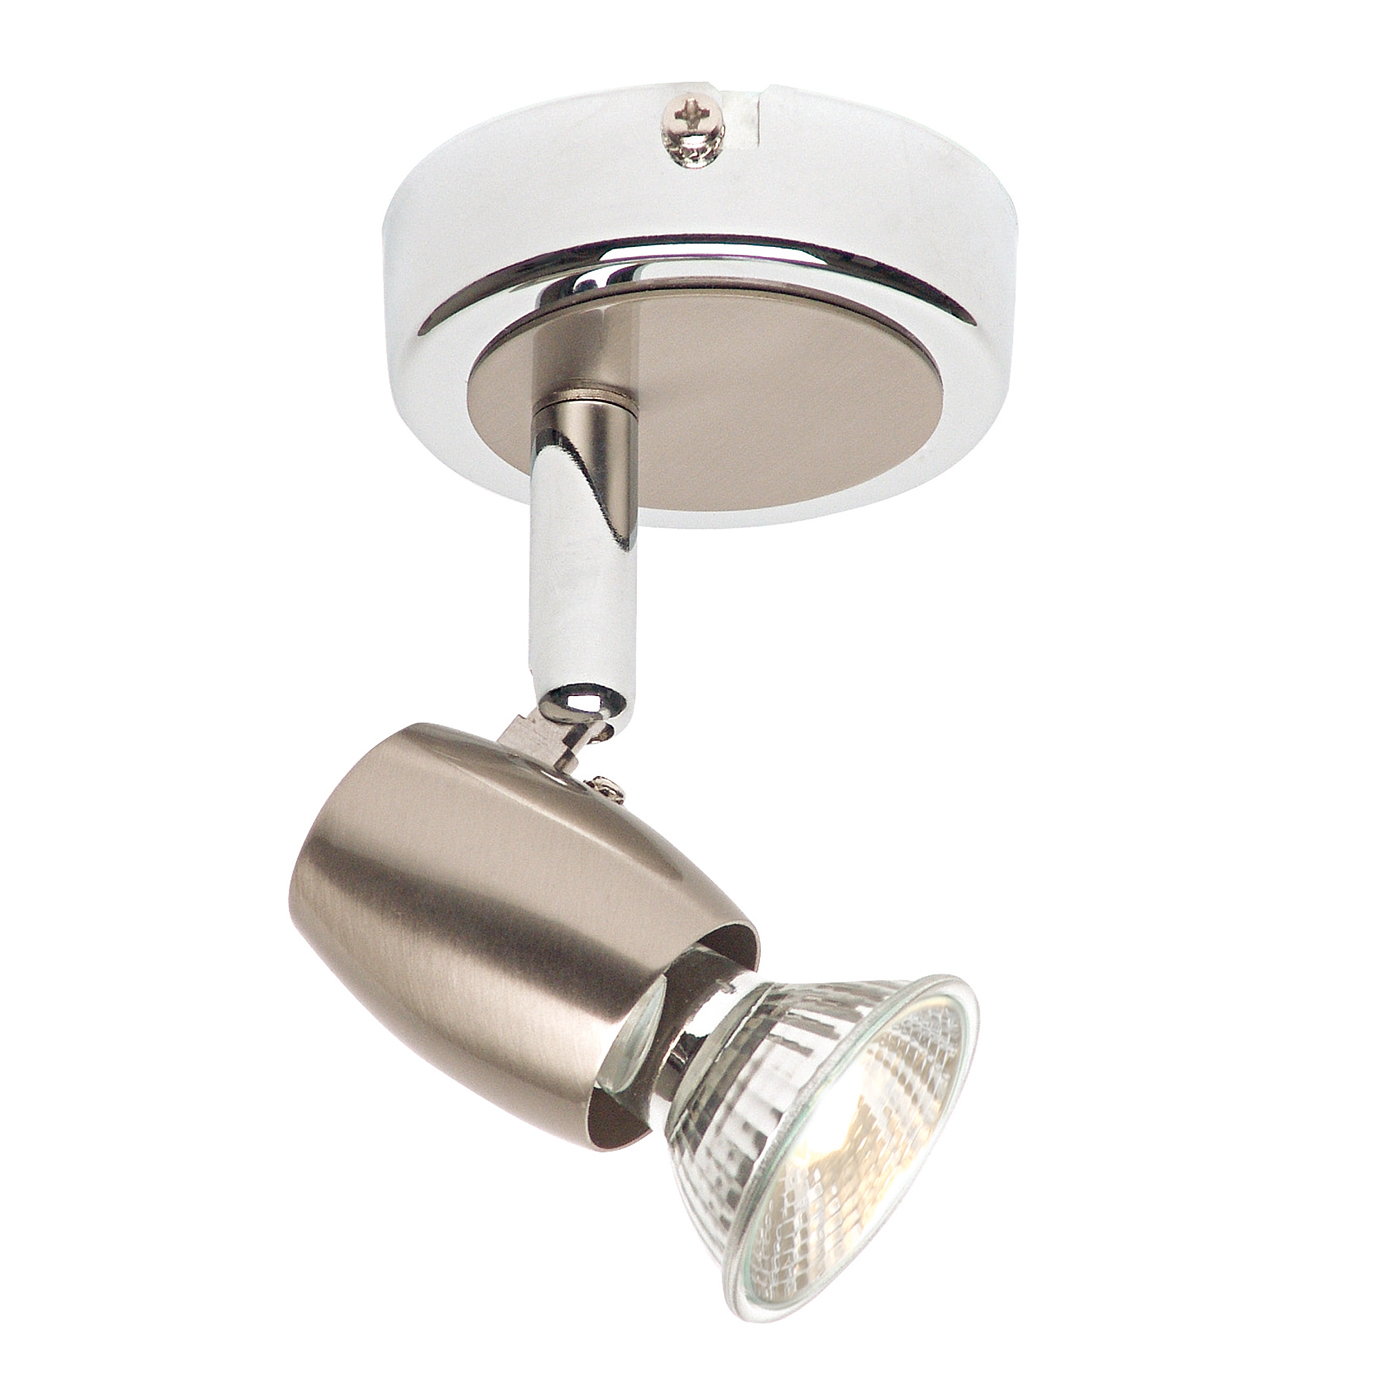 Endon Palermo ceiling spotlight plate 50W Brushed chrome effect plate Thumbnail 1